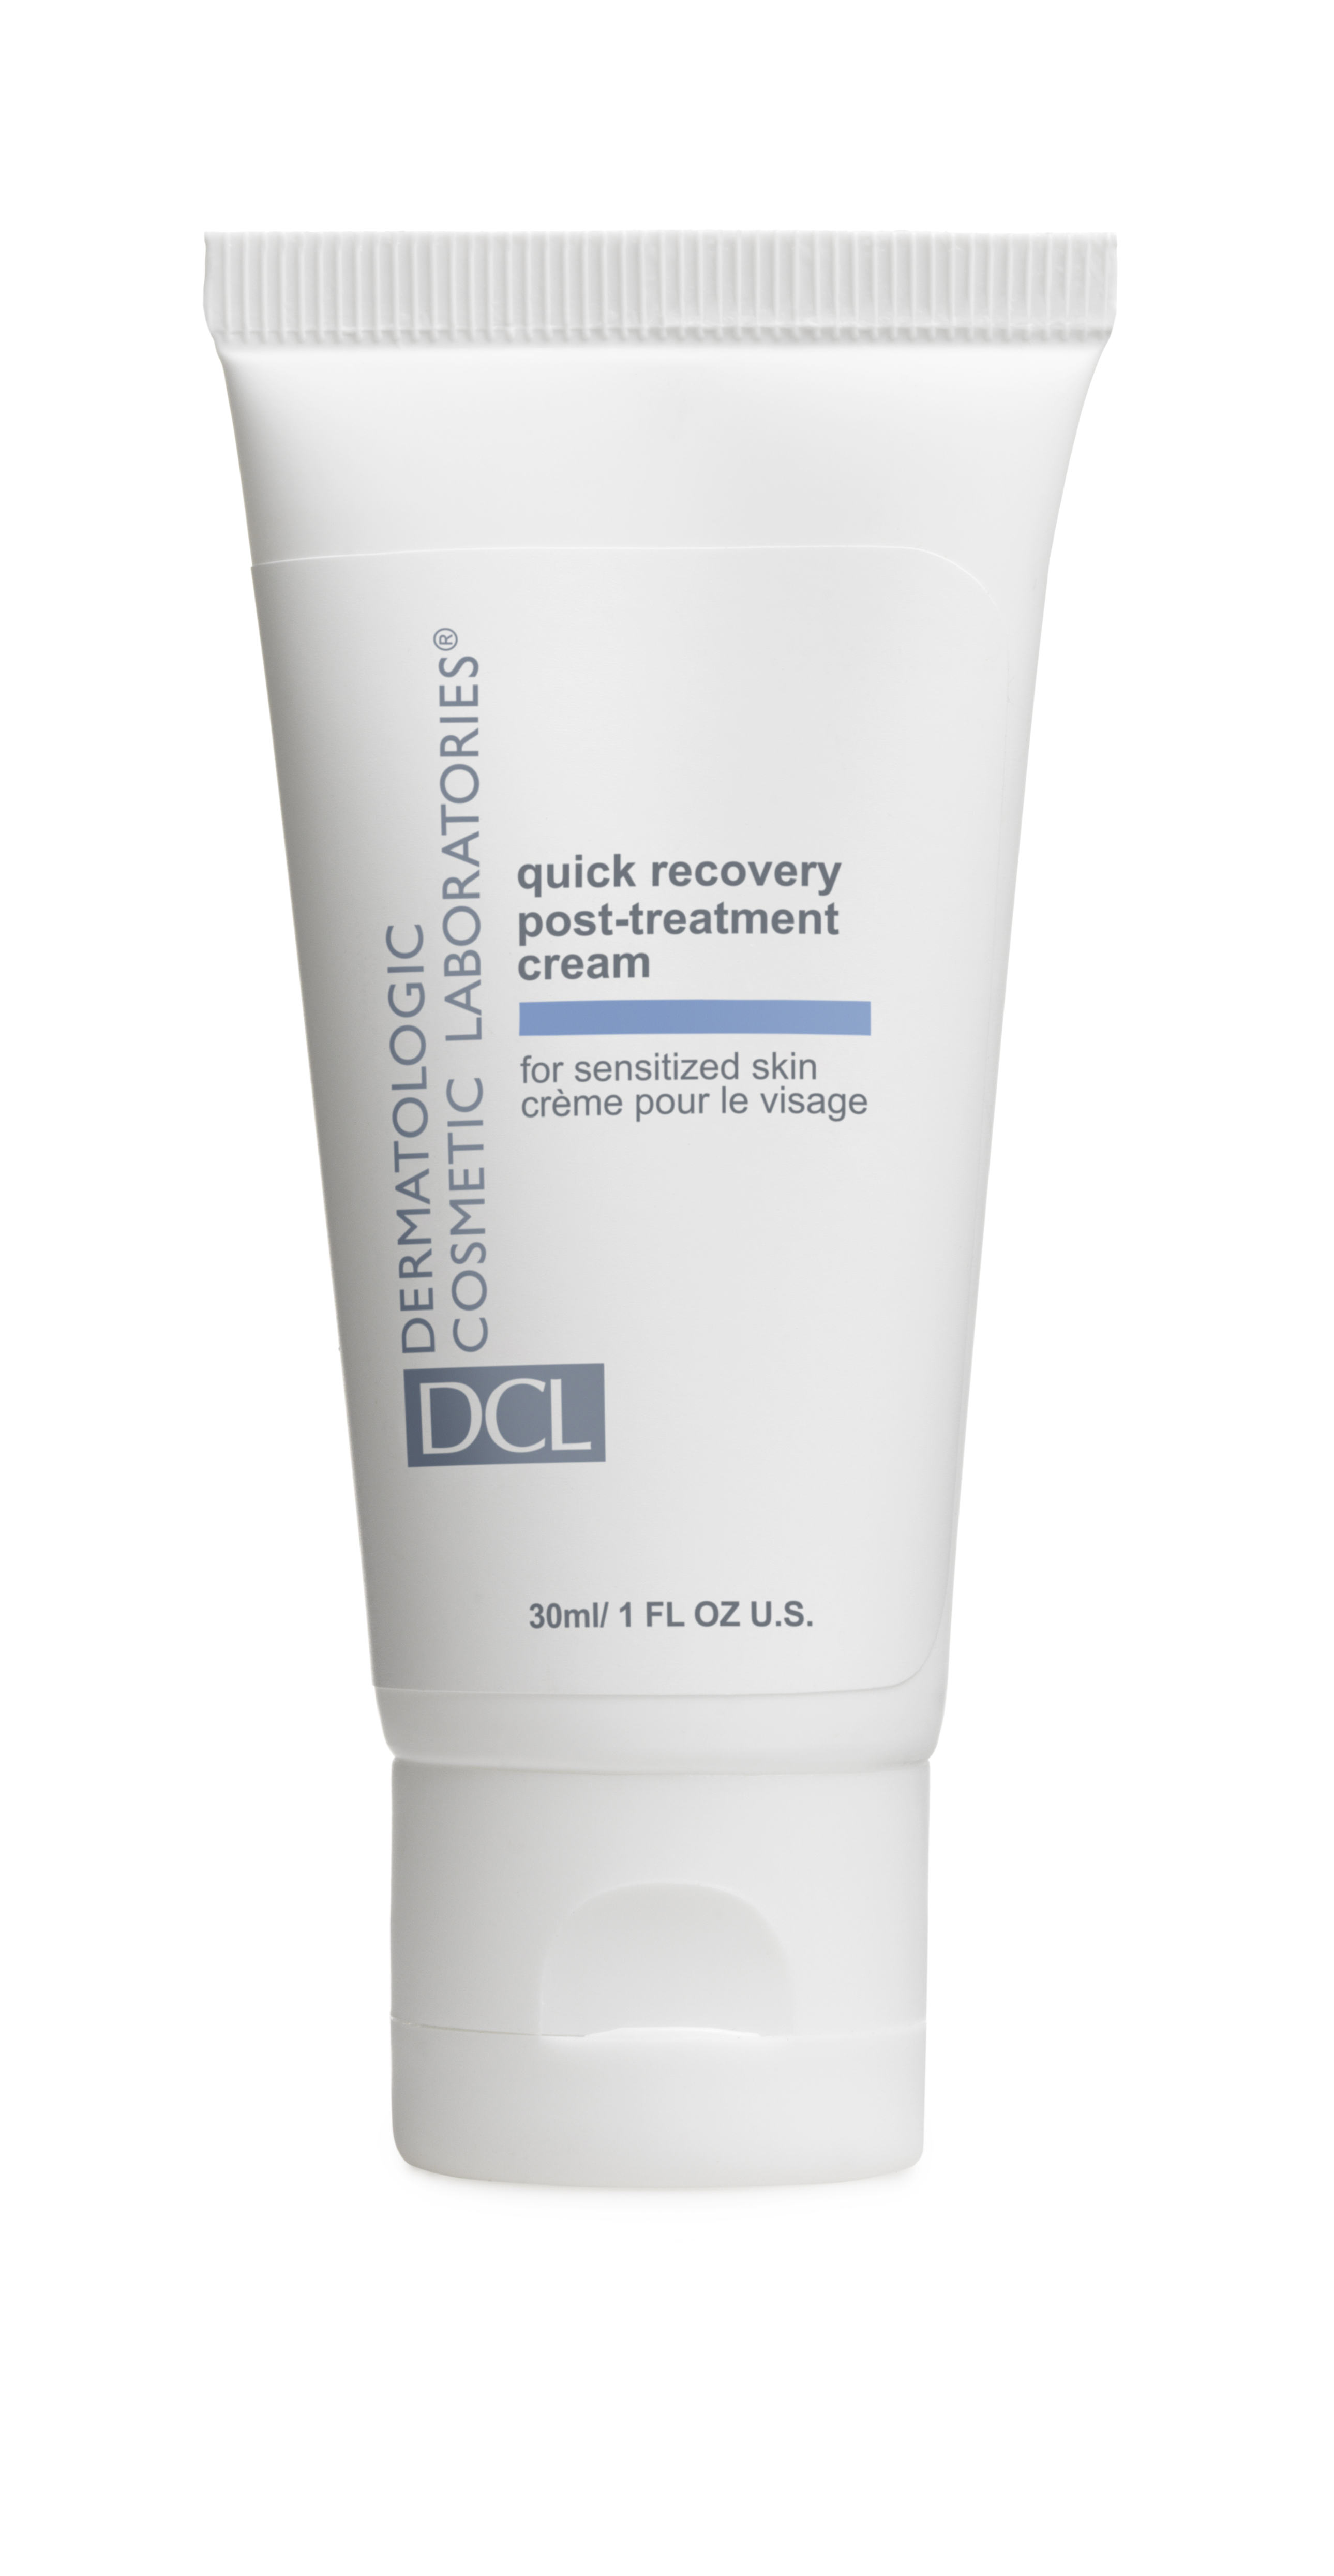 DCL Quick Recovery Post-Treatment Cream